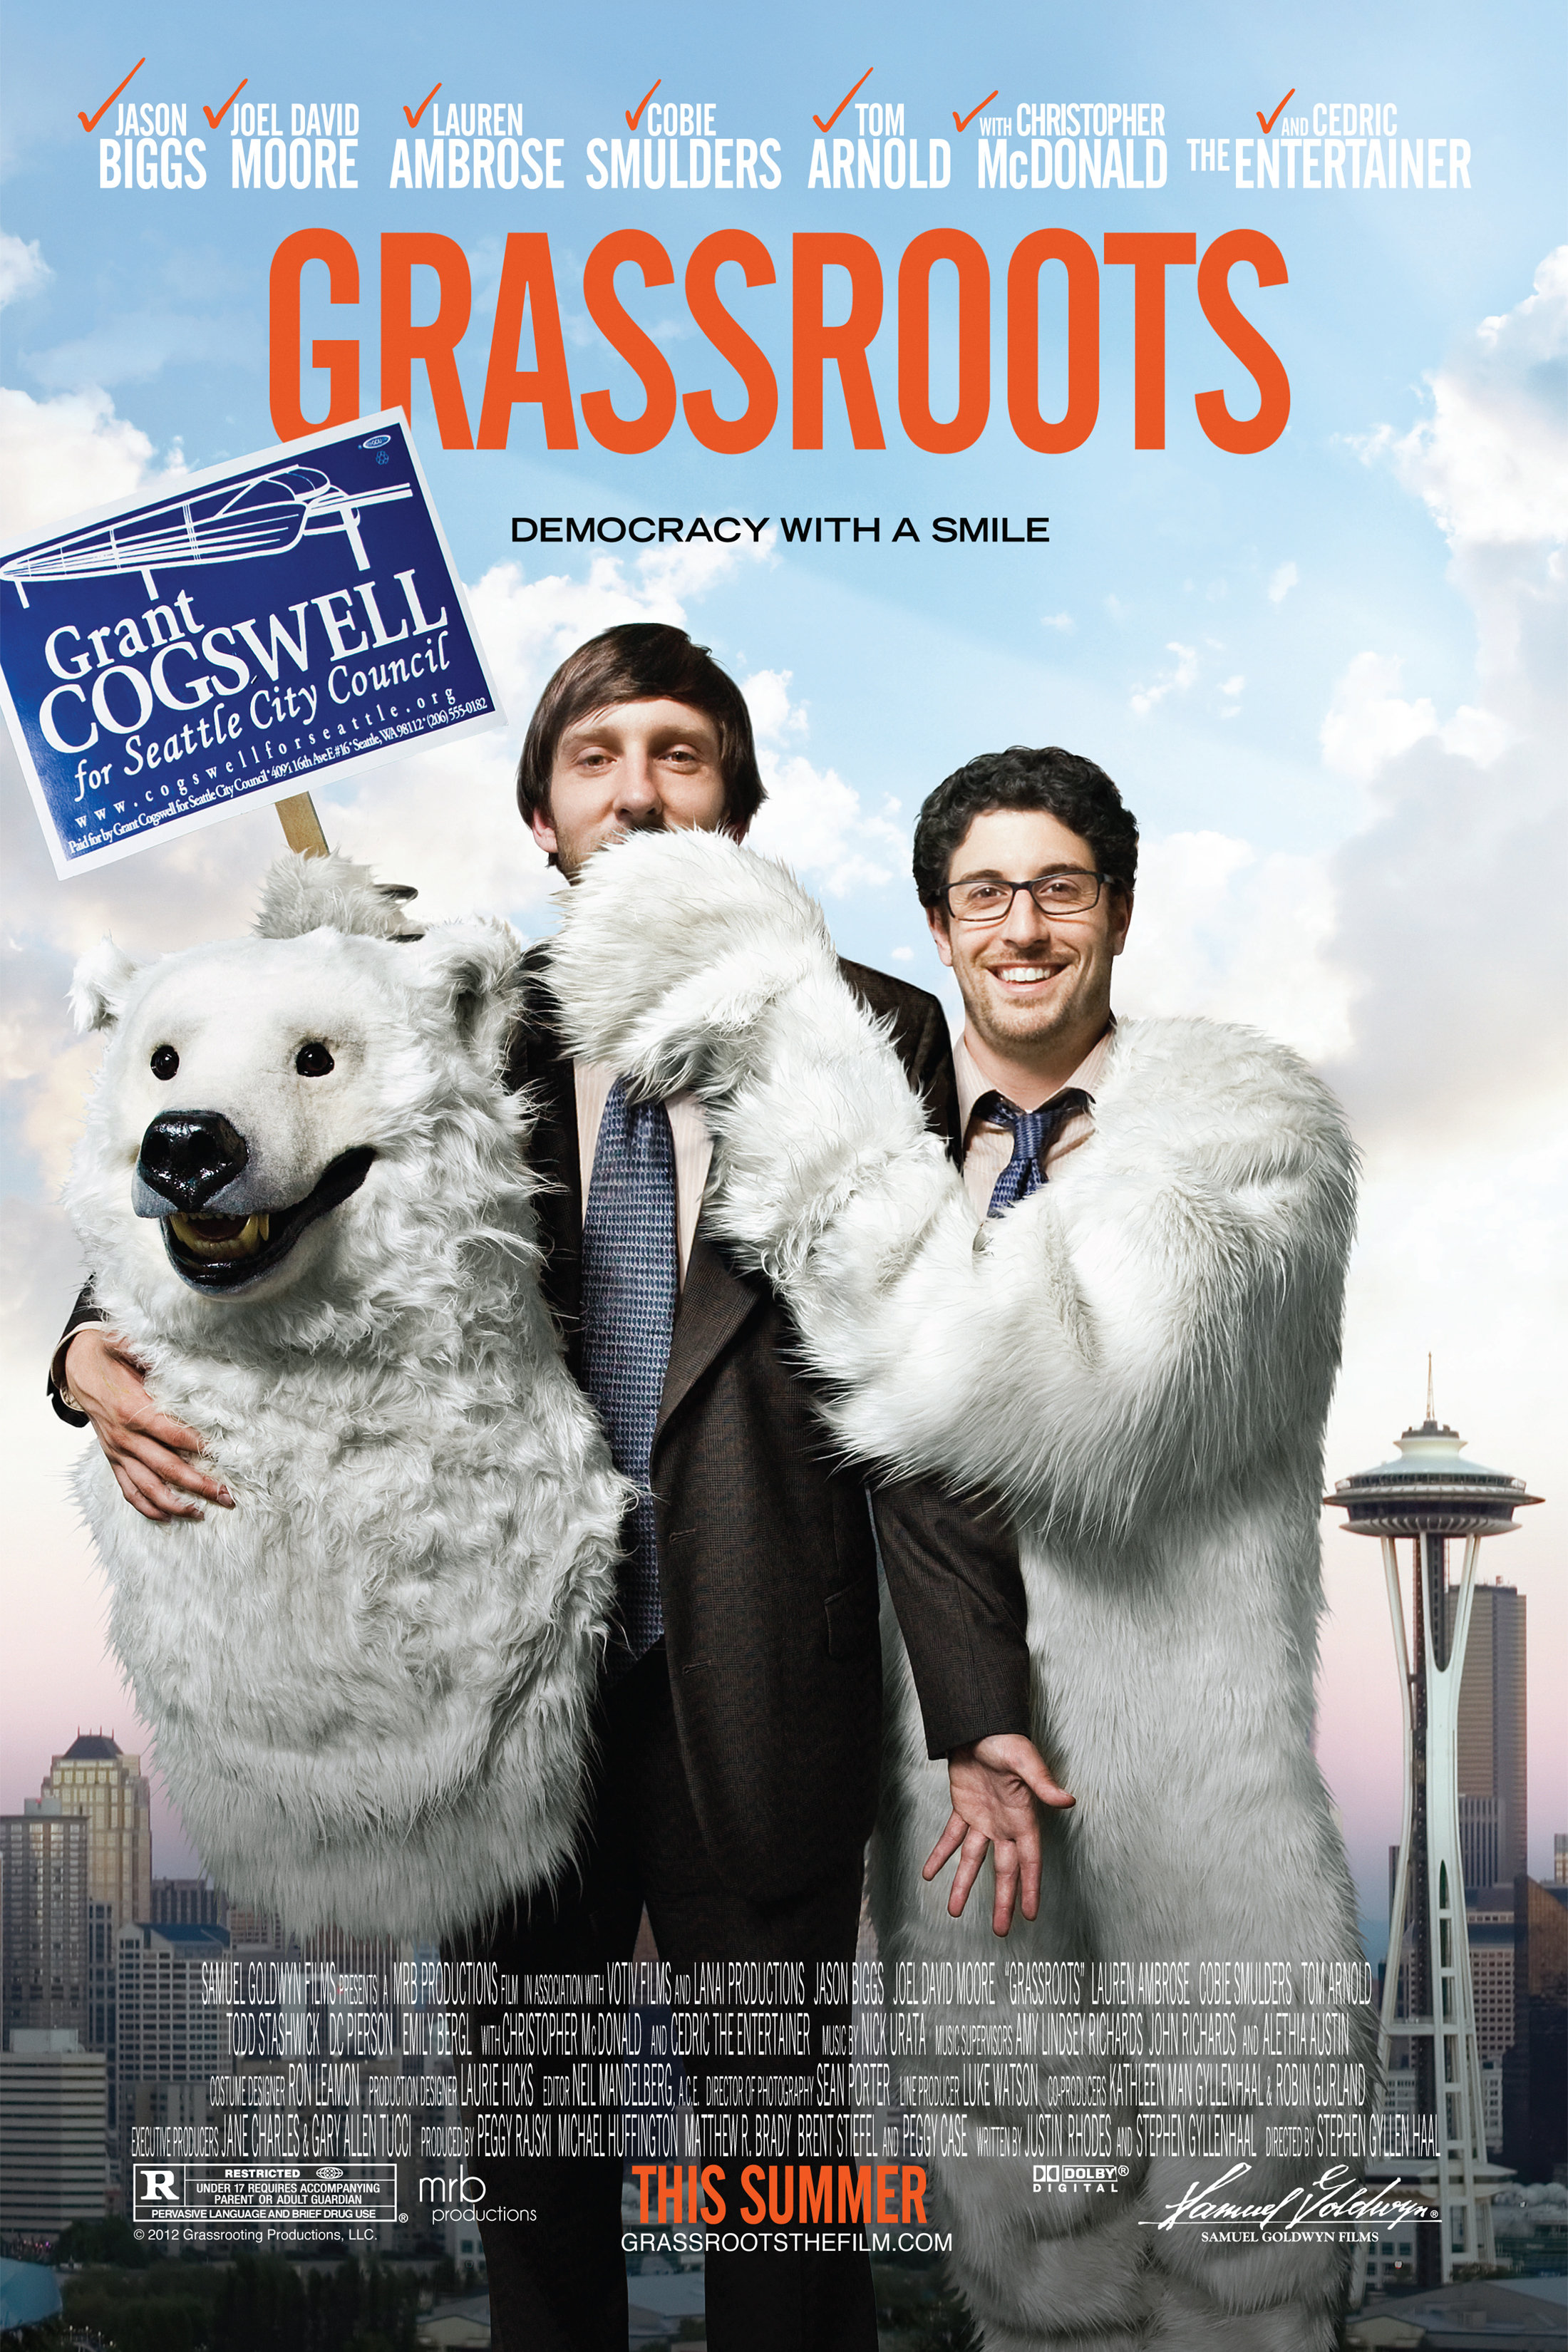 "Grassroots - Political candidate Grant Cogswell has his own set of image problems, starting with the fact that he likes to dress up as a polar bear and he's currently an unemployable music critic. In Stephen Gyllenhaal's bittersweet, uplifting comedy GRASSROOTS - based on the true story of the 2001 Seattle City Council election - Cogswell becomes the mono-maniacal man of the people, rallying an unlikely posse of misfits, slackers and square pegs to his seemingly hopeless David-and-Goliath battle against firmly entrenched incumbent. GRASSROOTS received a limited theatrical release and is distributed by Samuel Goldwyn Films.""…a witty, well-cast, sometimes ingeniously paced political comedy…"" - John Hartl, Seattle Times"